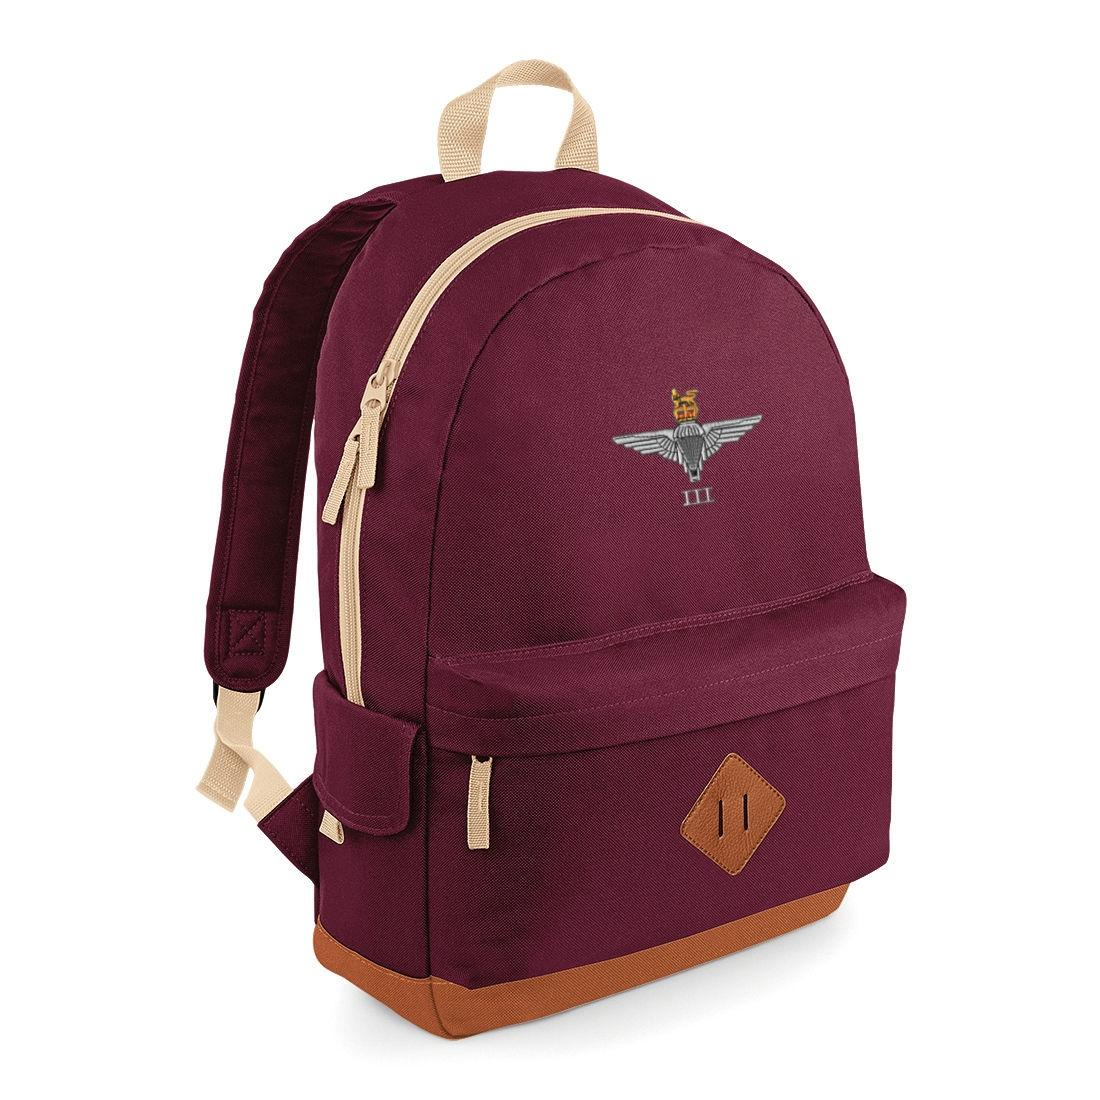 Heritage Backpack - Maroon, 3 Para Cap-Badge